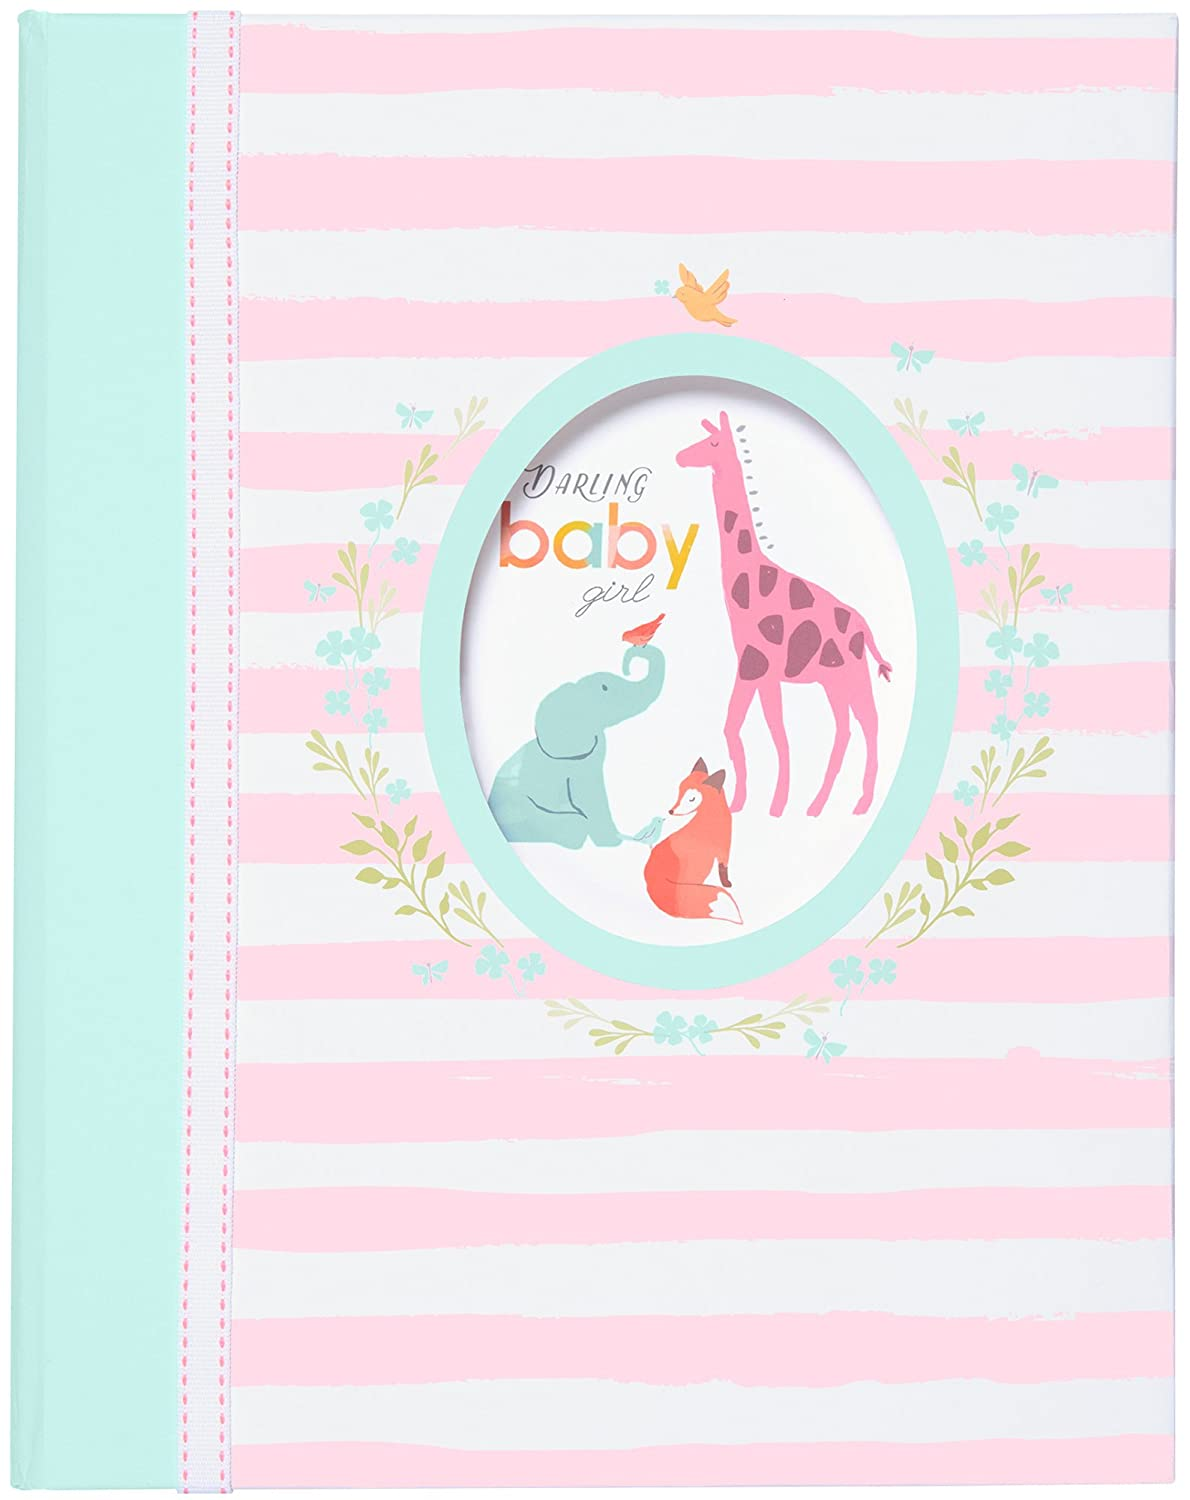 Carter's'Darling Baby Girl' Slim Bound Photo Journal Album for Baby and Newborn Girls, 9' W x 8.875' H, 80 Pages 9 W x 8.875 H C.R. Gibson - Baby BP1-18283